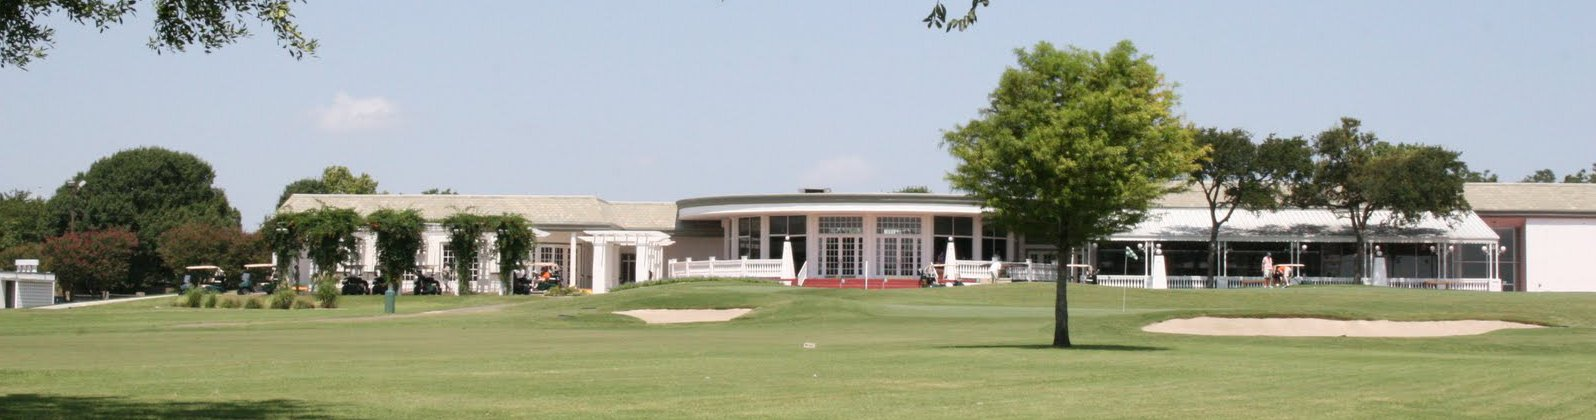 The Golf Club of Dallas 19th Hole